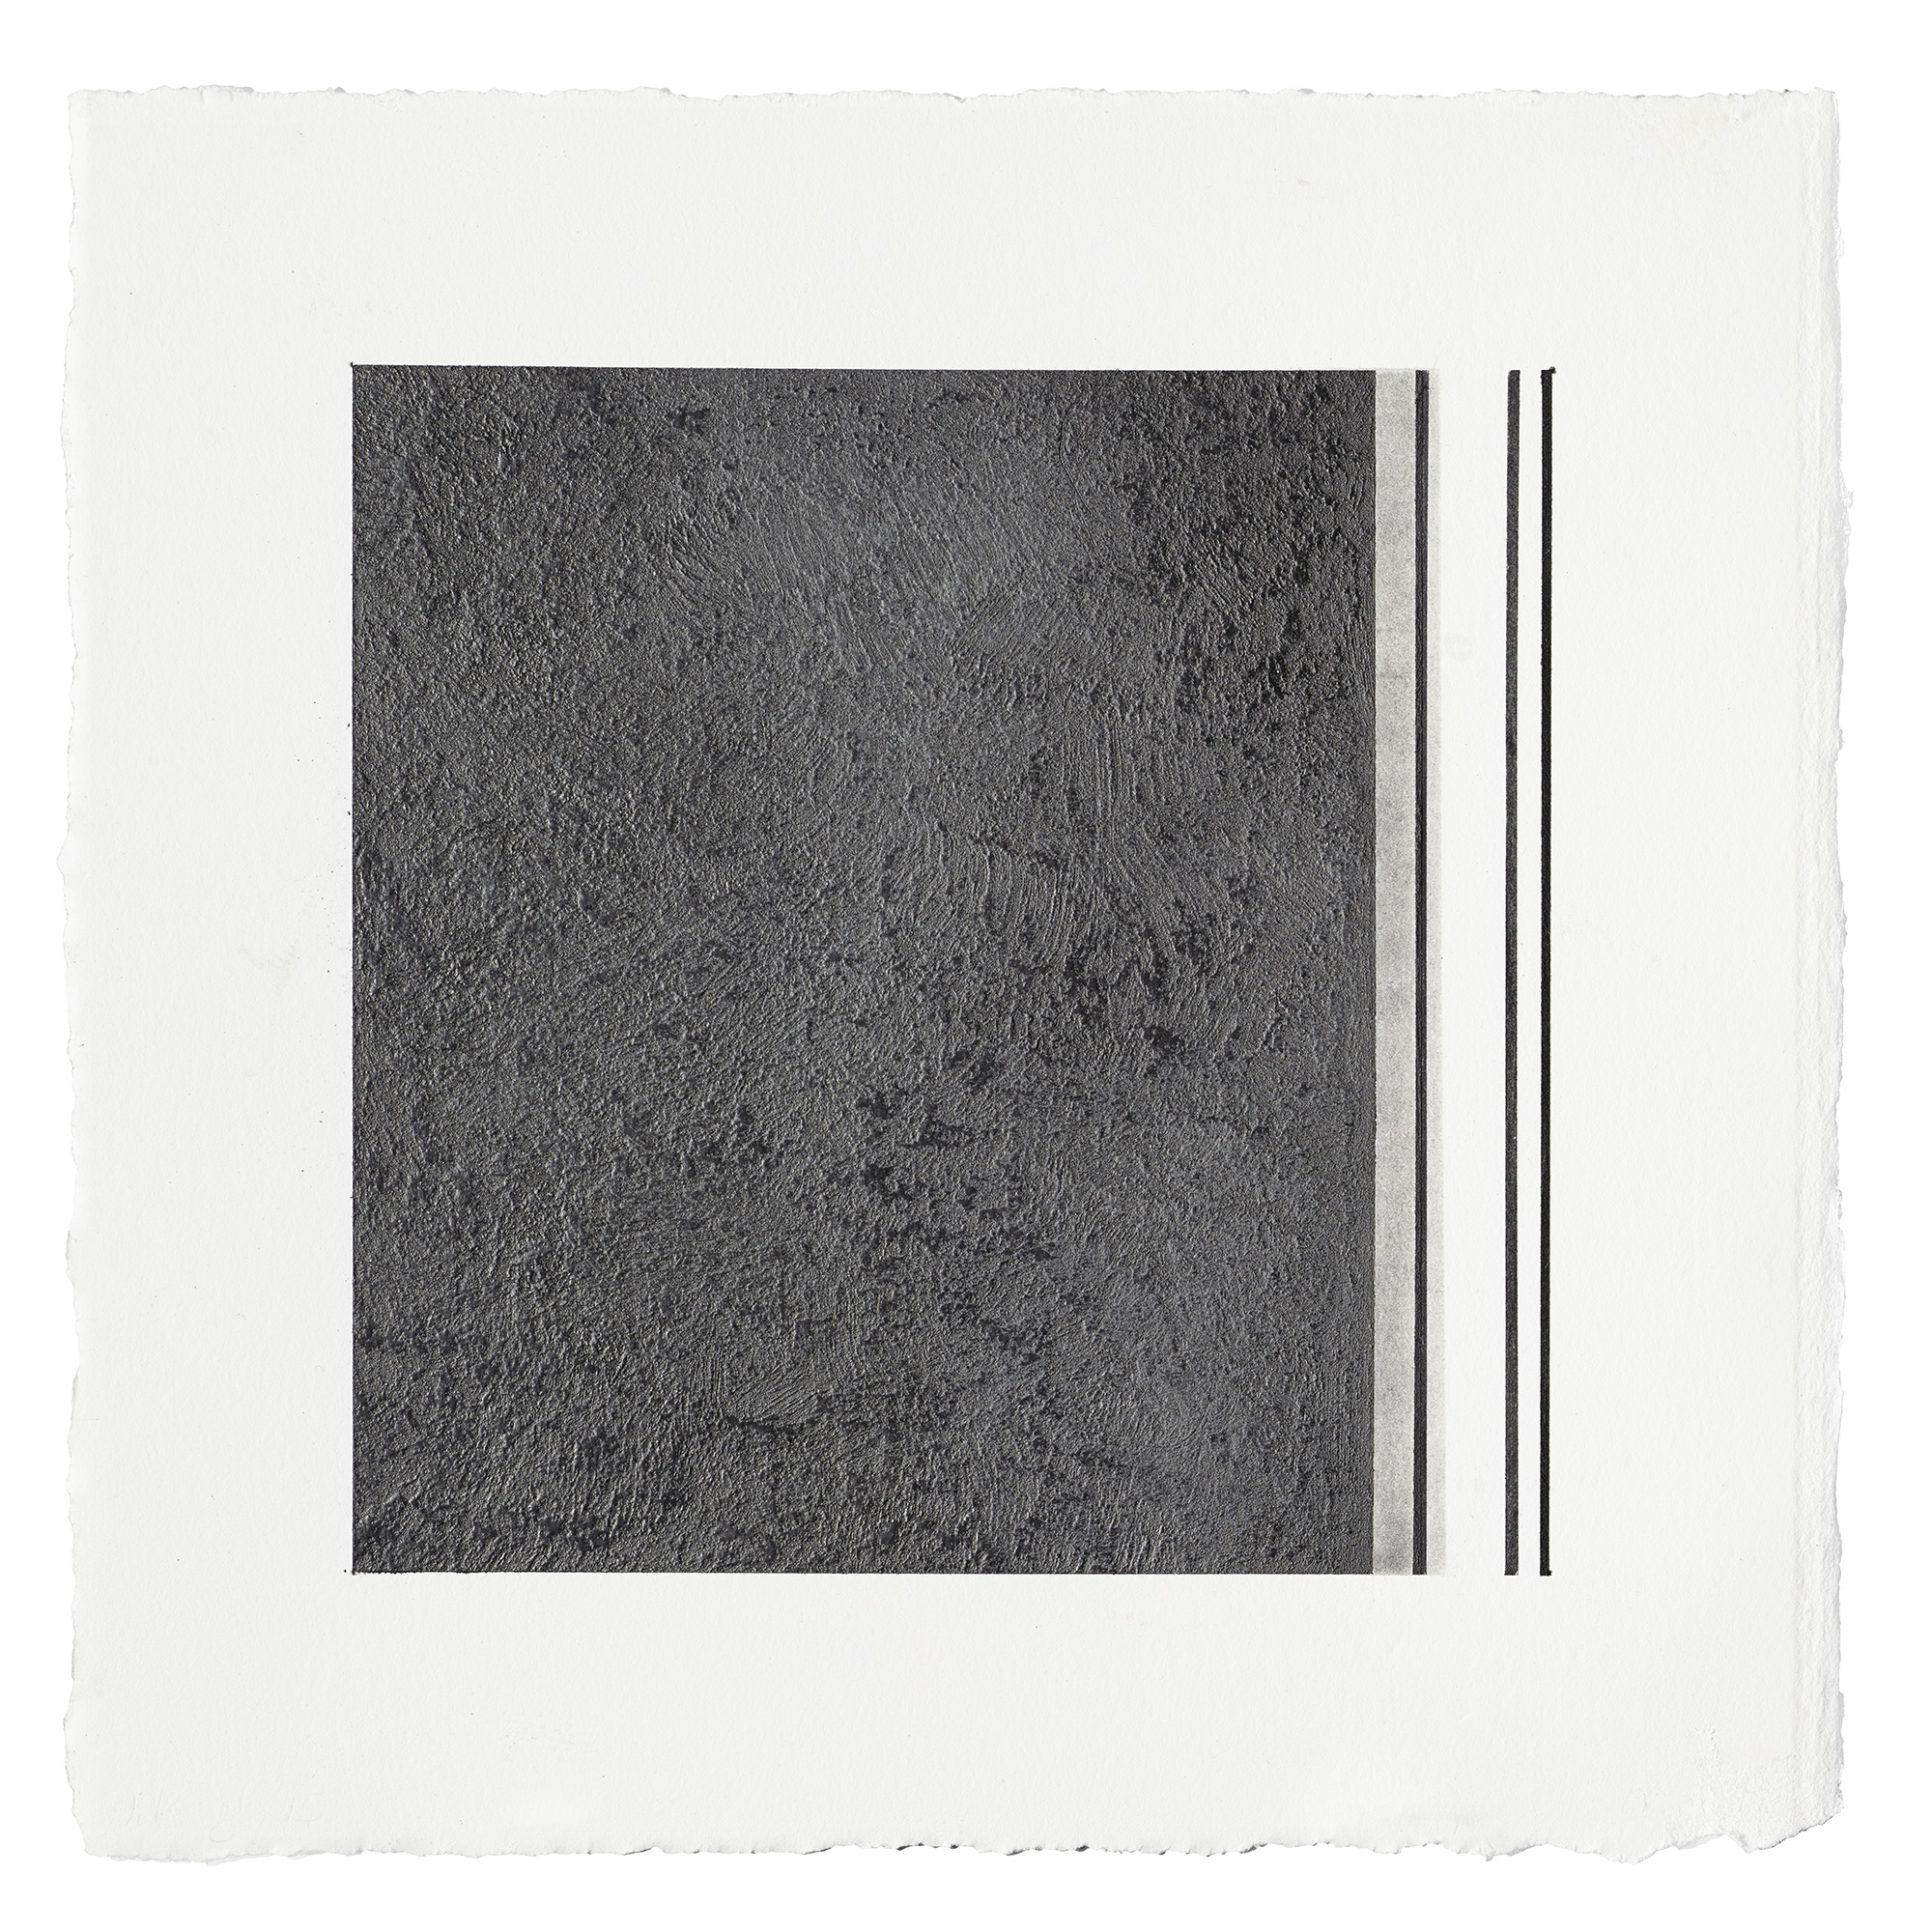 """ML42 peach pit soot and graphite on paper, 10.5"""" by 10.5"""", 2015"""